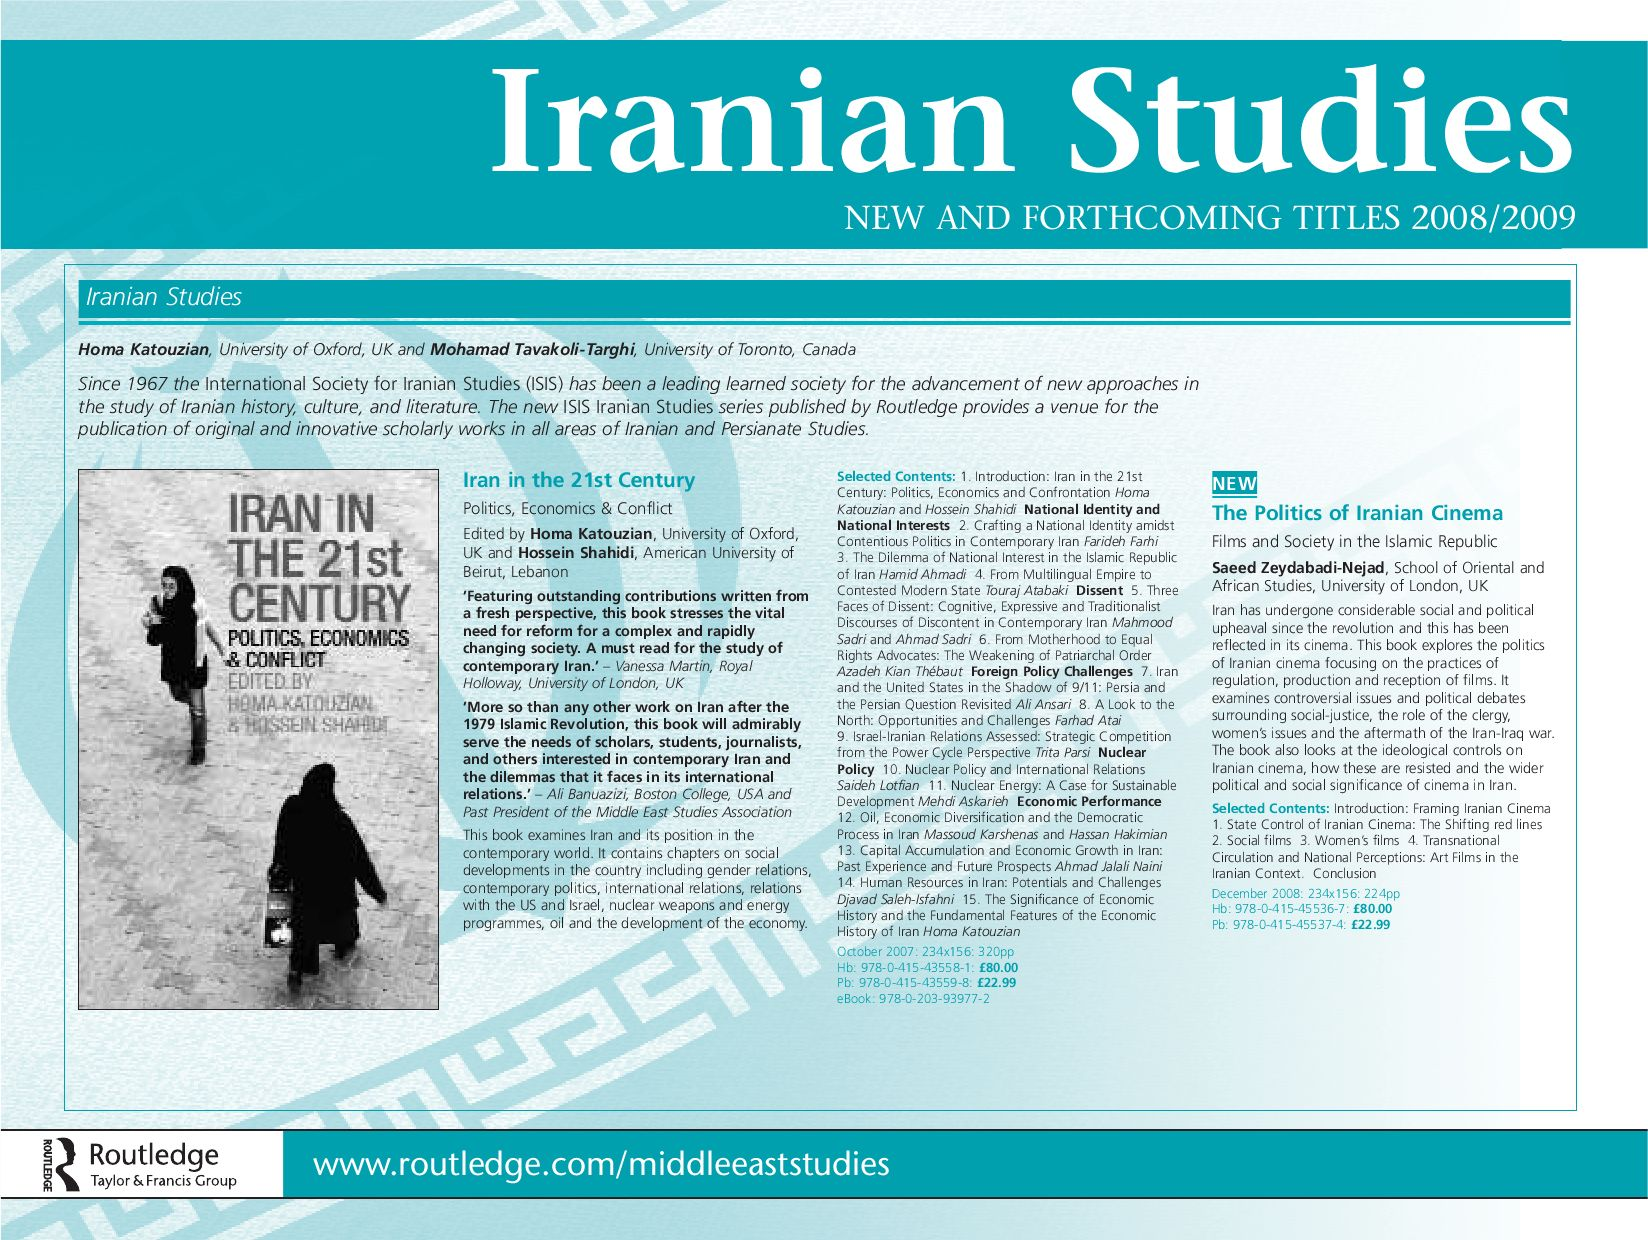 a study of iran Reading lolita in tehran study guide contains a biography of azar nafisi, literature essays, quiz questions, major themes, characters, and a full summary and analysis.